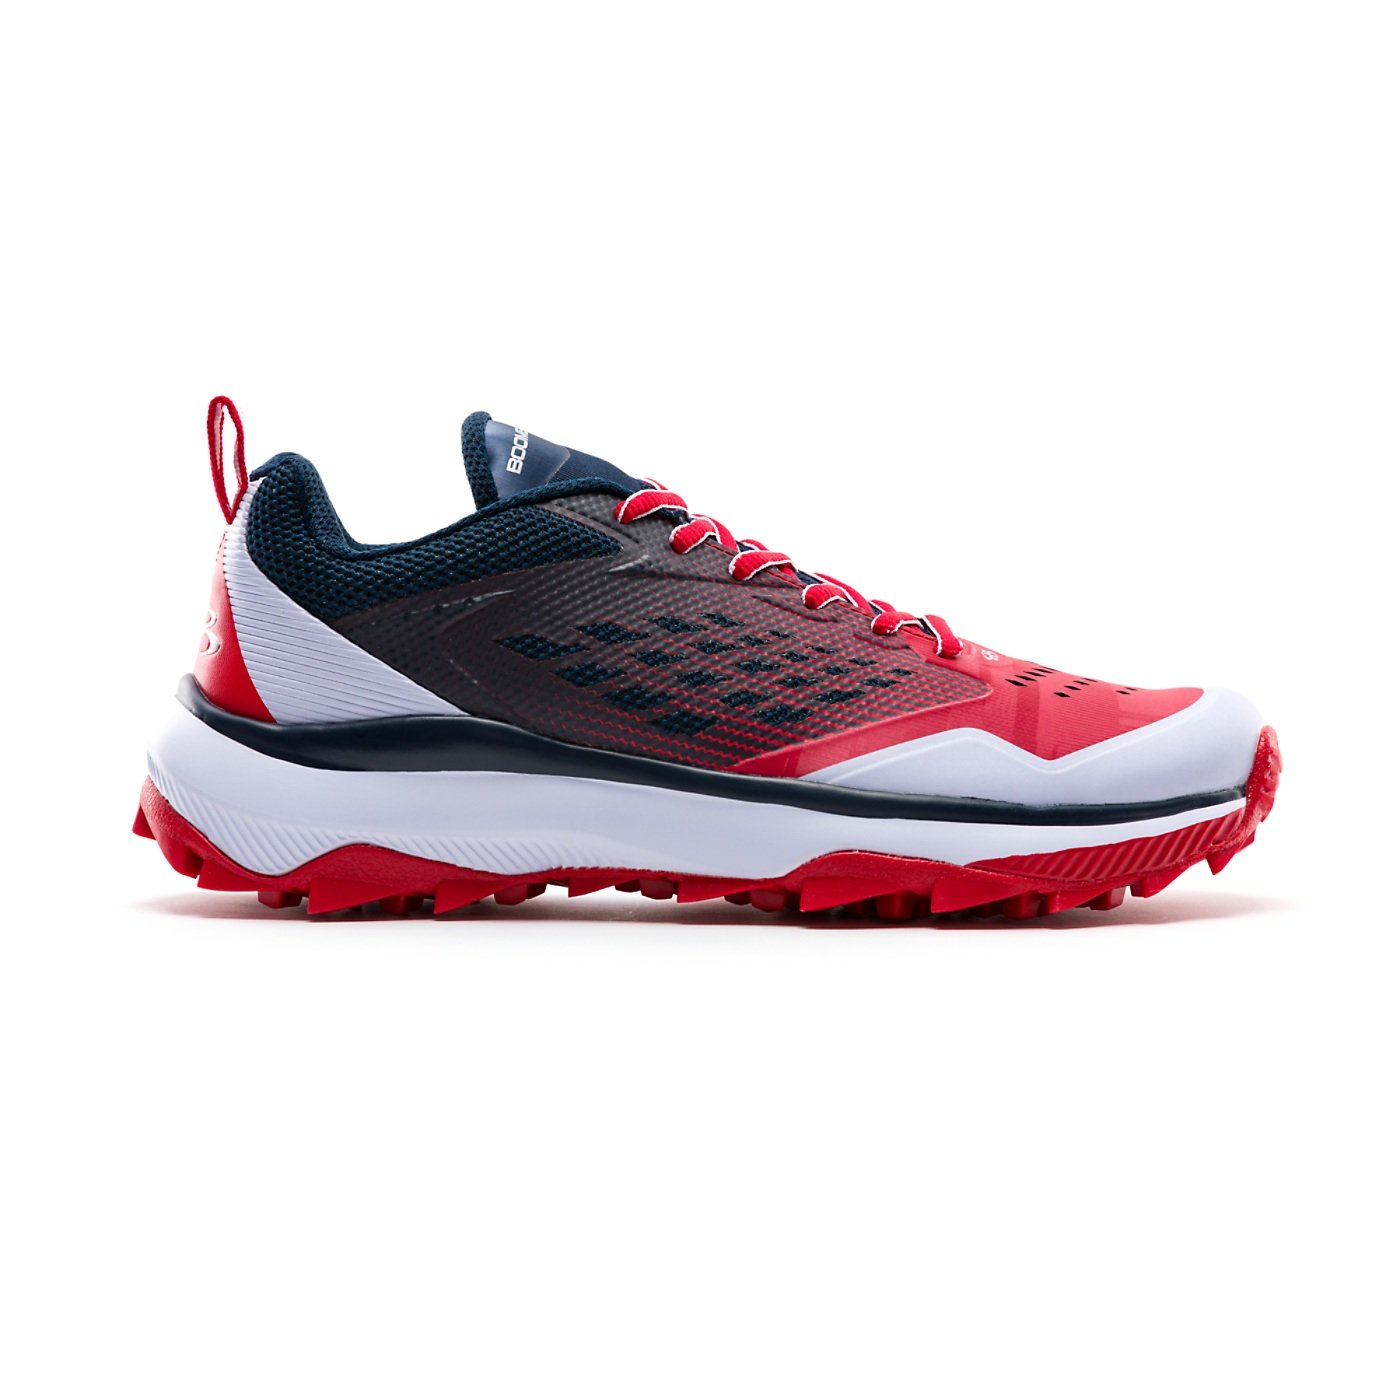 Boombah Men's Marauder Turf Navy/Red - Size 8